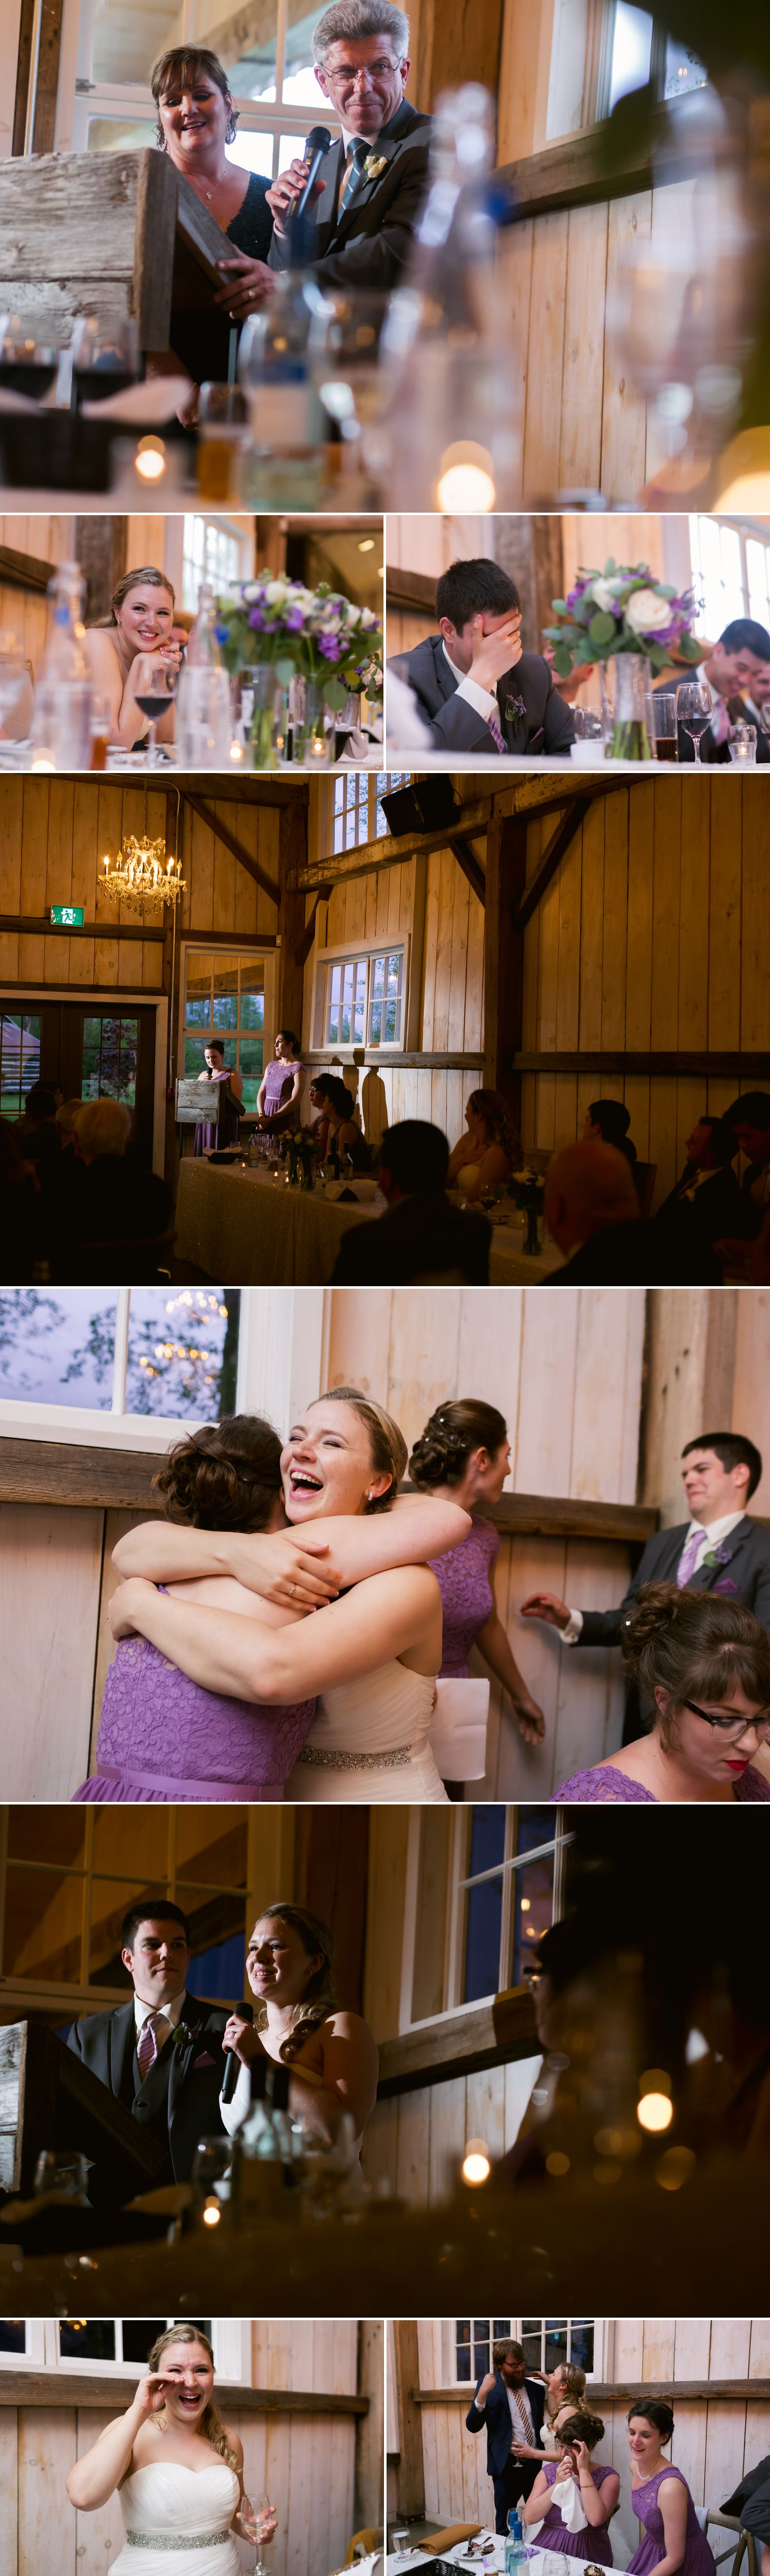 The bride and groom enjoying speeches by friends and family during their reception in the Stonefields loft